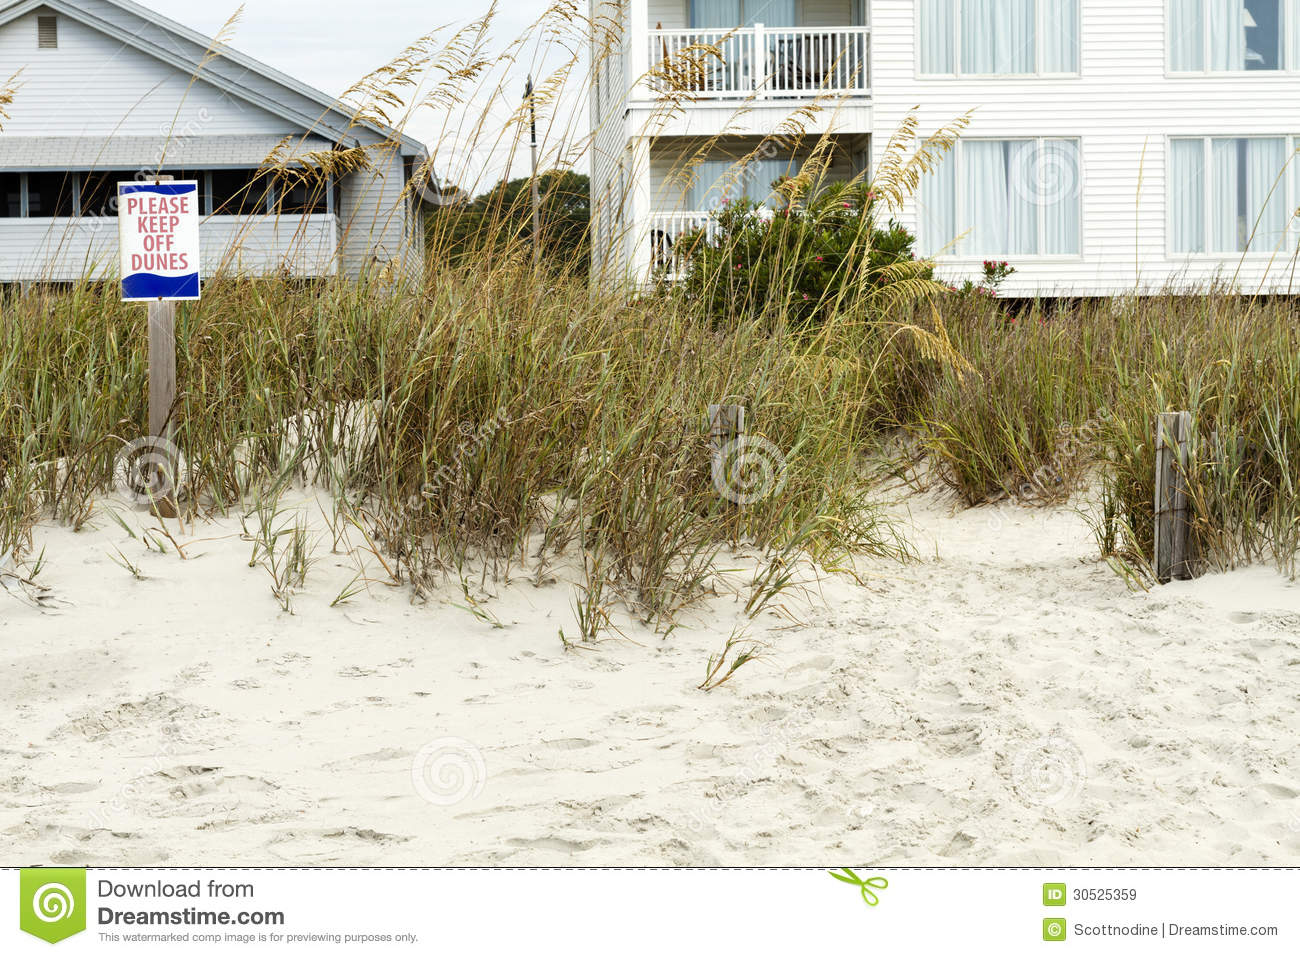 Please Keep Off Dunes Sign And Beach Houses Royalty Free Stock Images